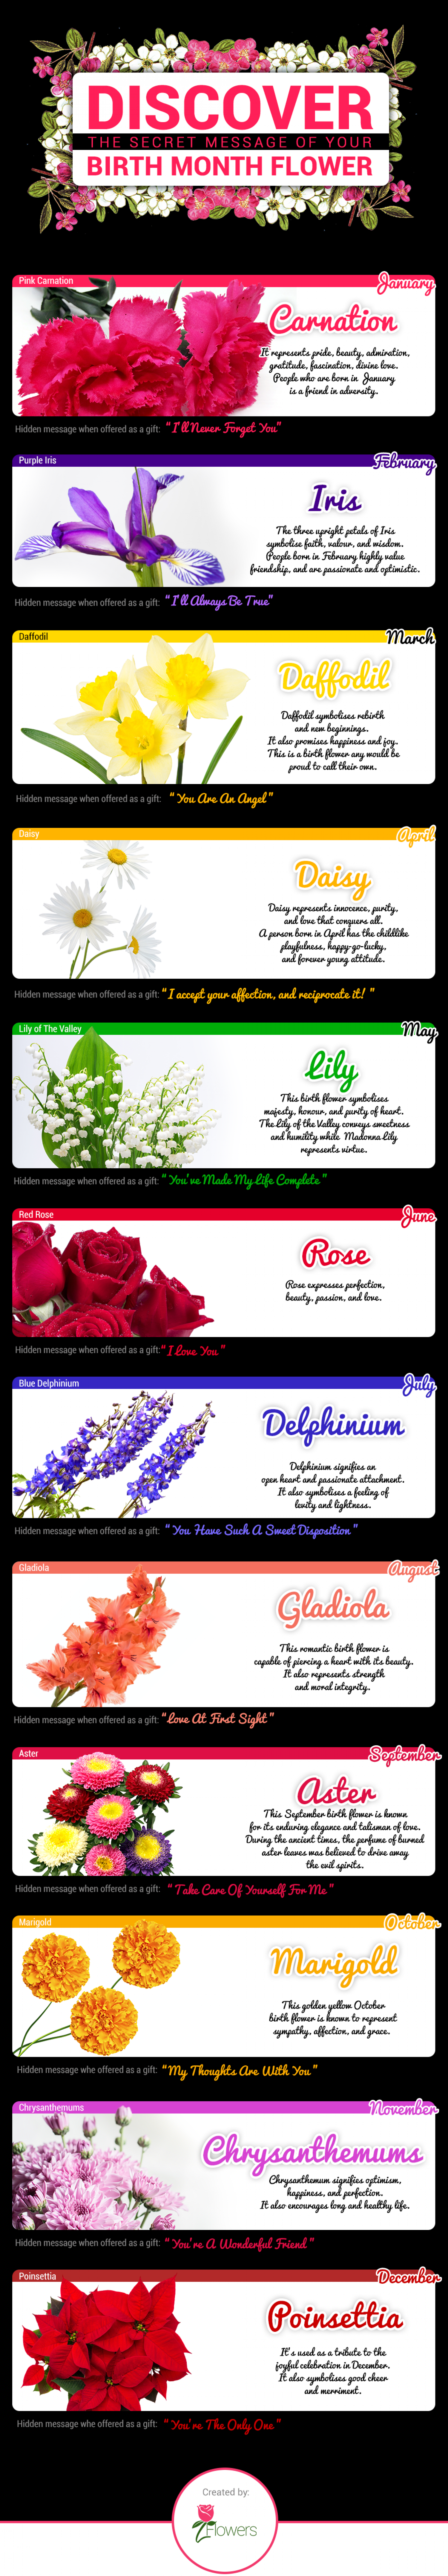 Discover the Secret Message of Your Birth Month Flower Infographic